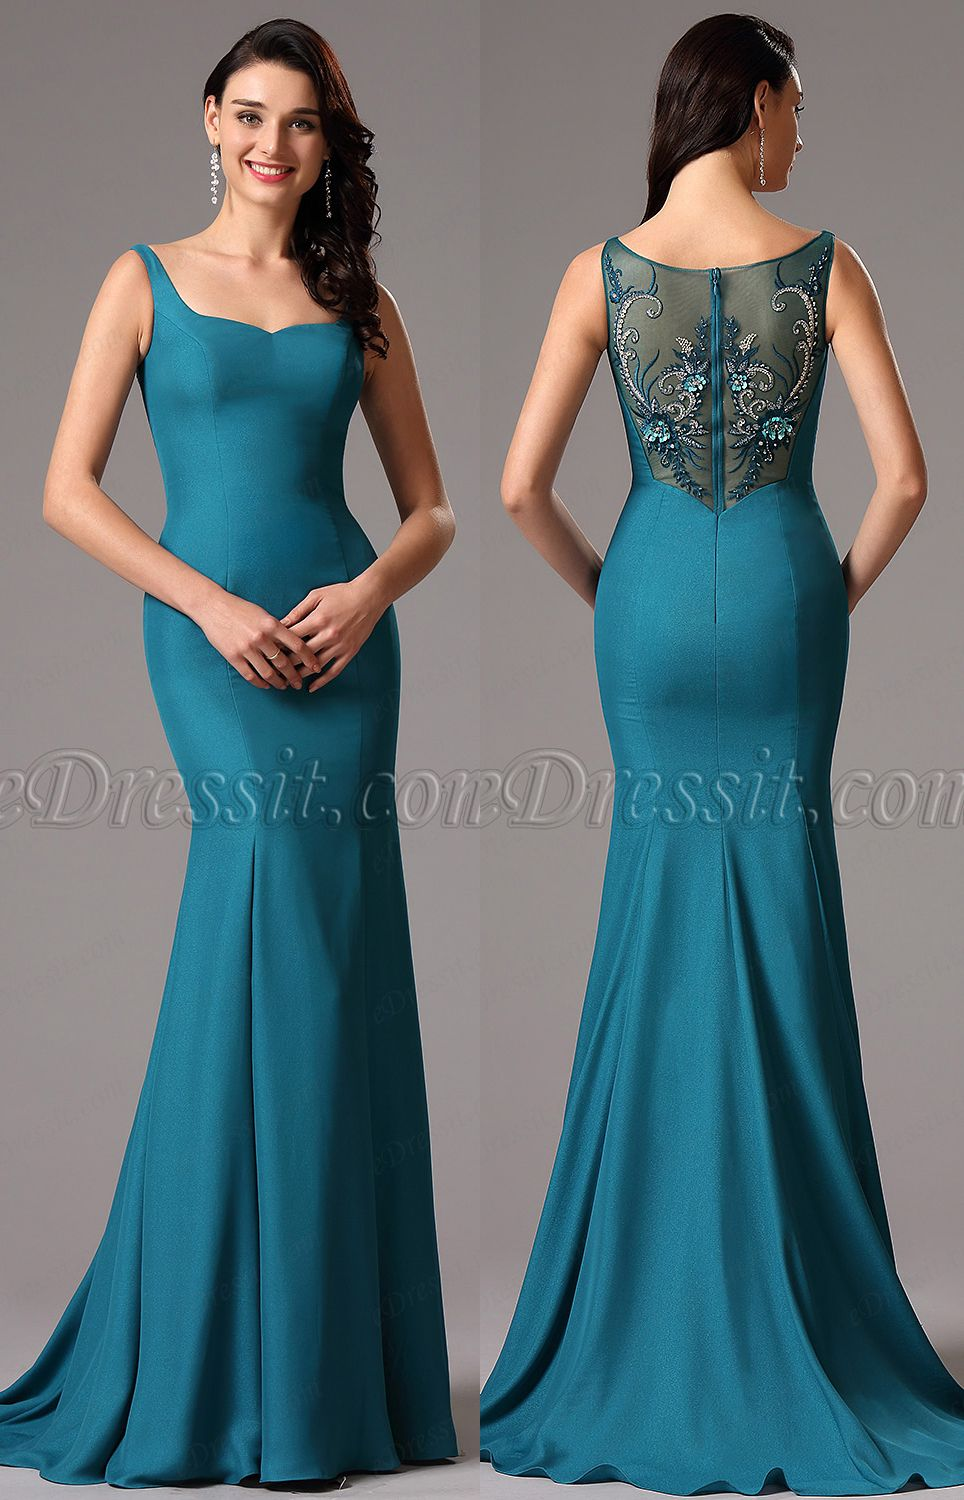 Sapphire mermaid evening dress with lace embroidery is beautiful ...